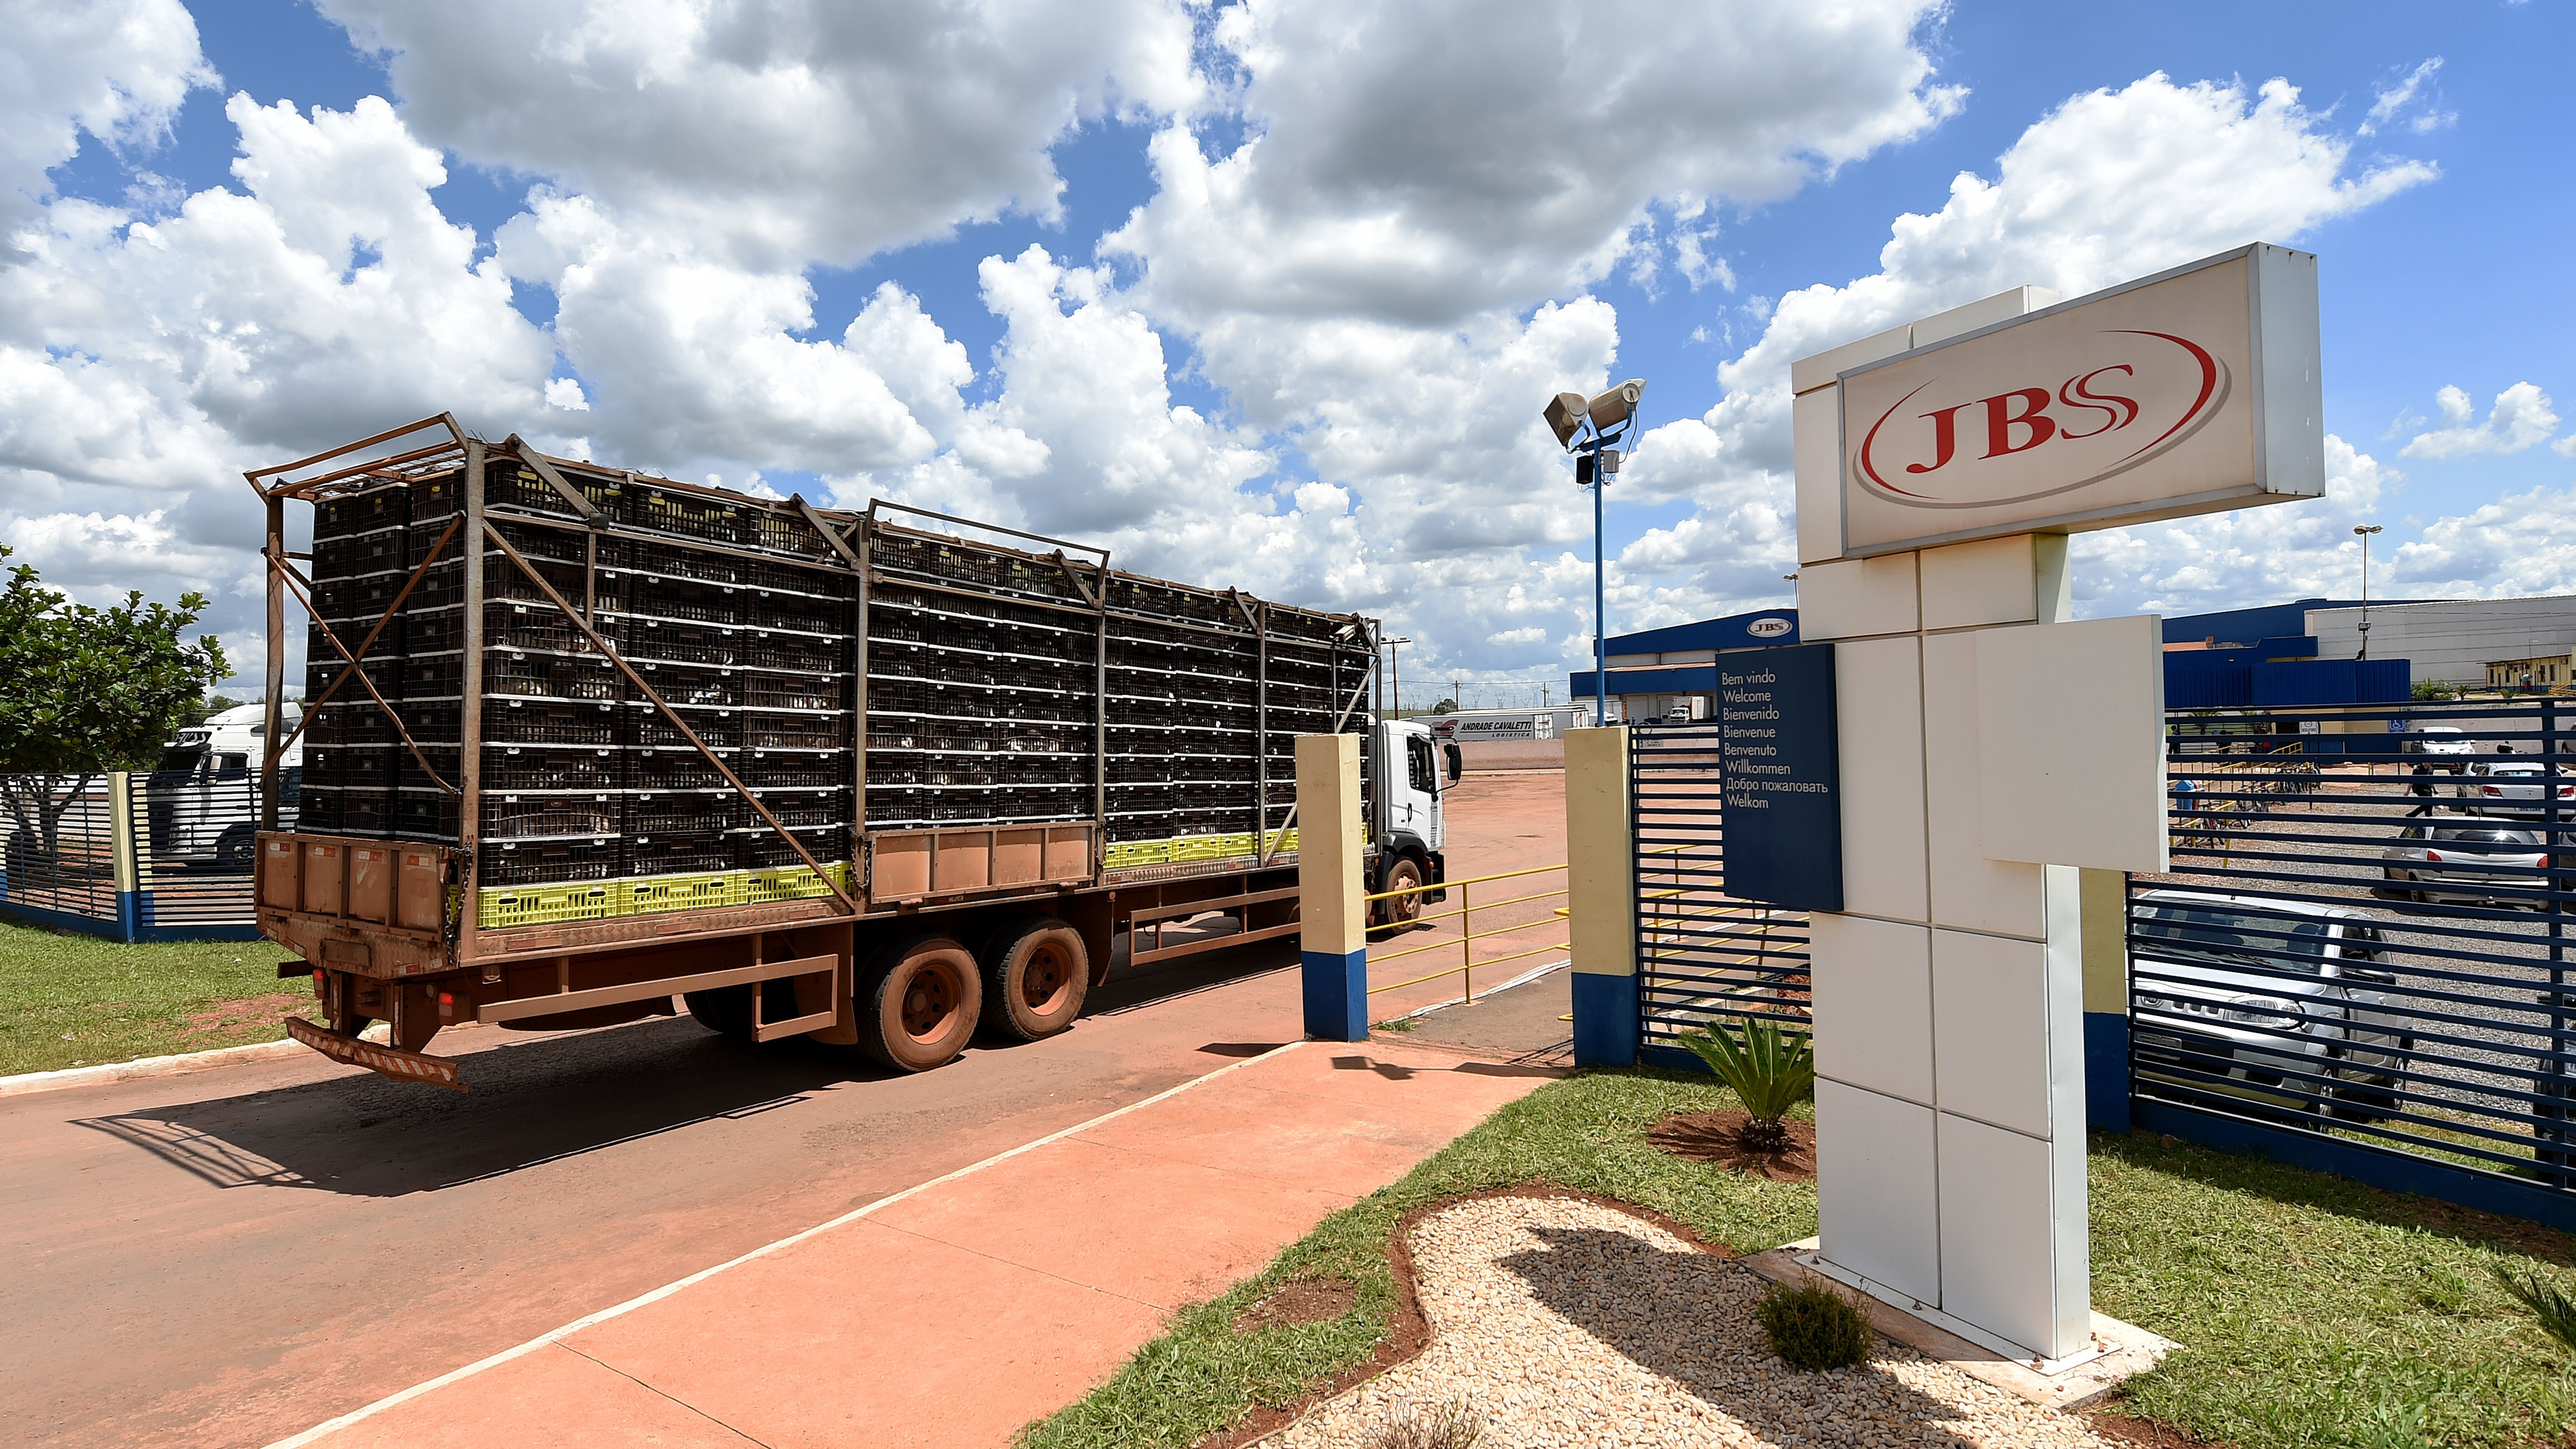 Brazilian meatpacker to pay fine of more than $3 billion